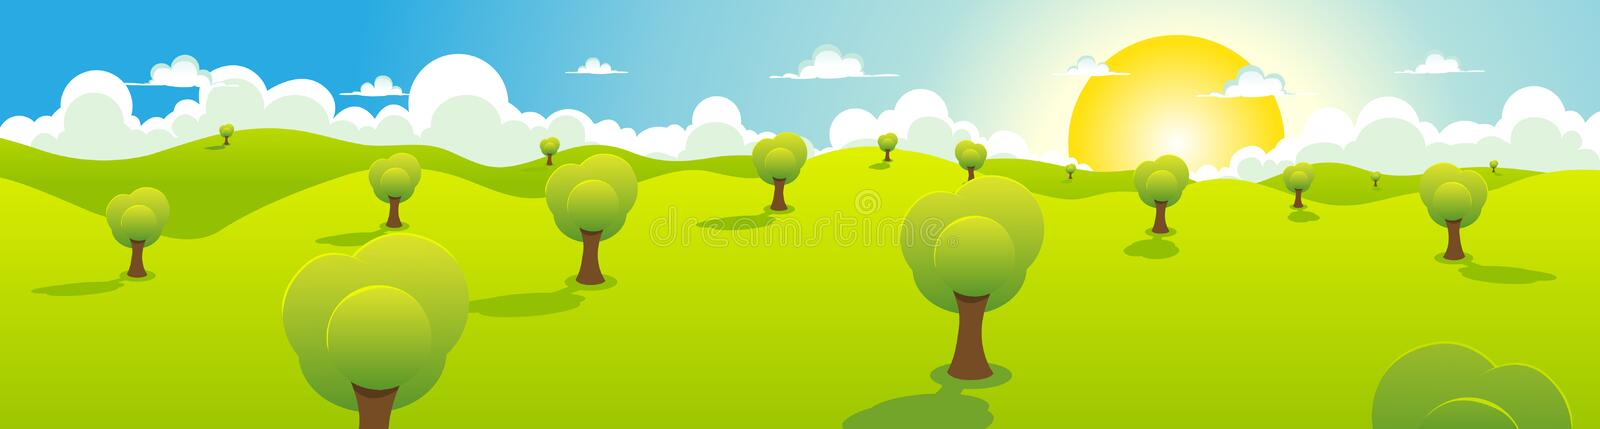 Cartoon Spring Or Summer Landscape Header vector illustration